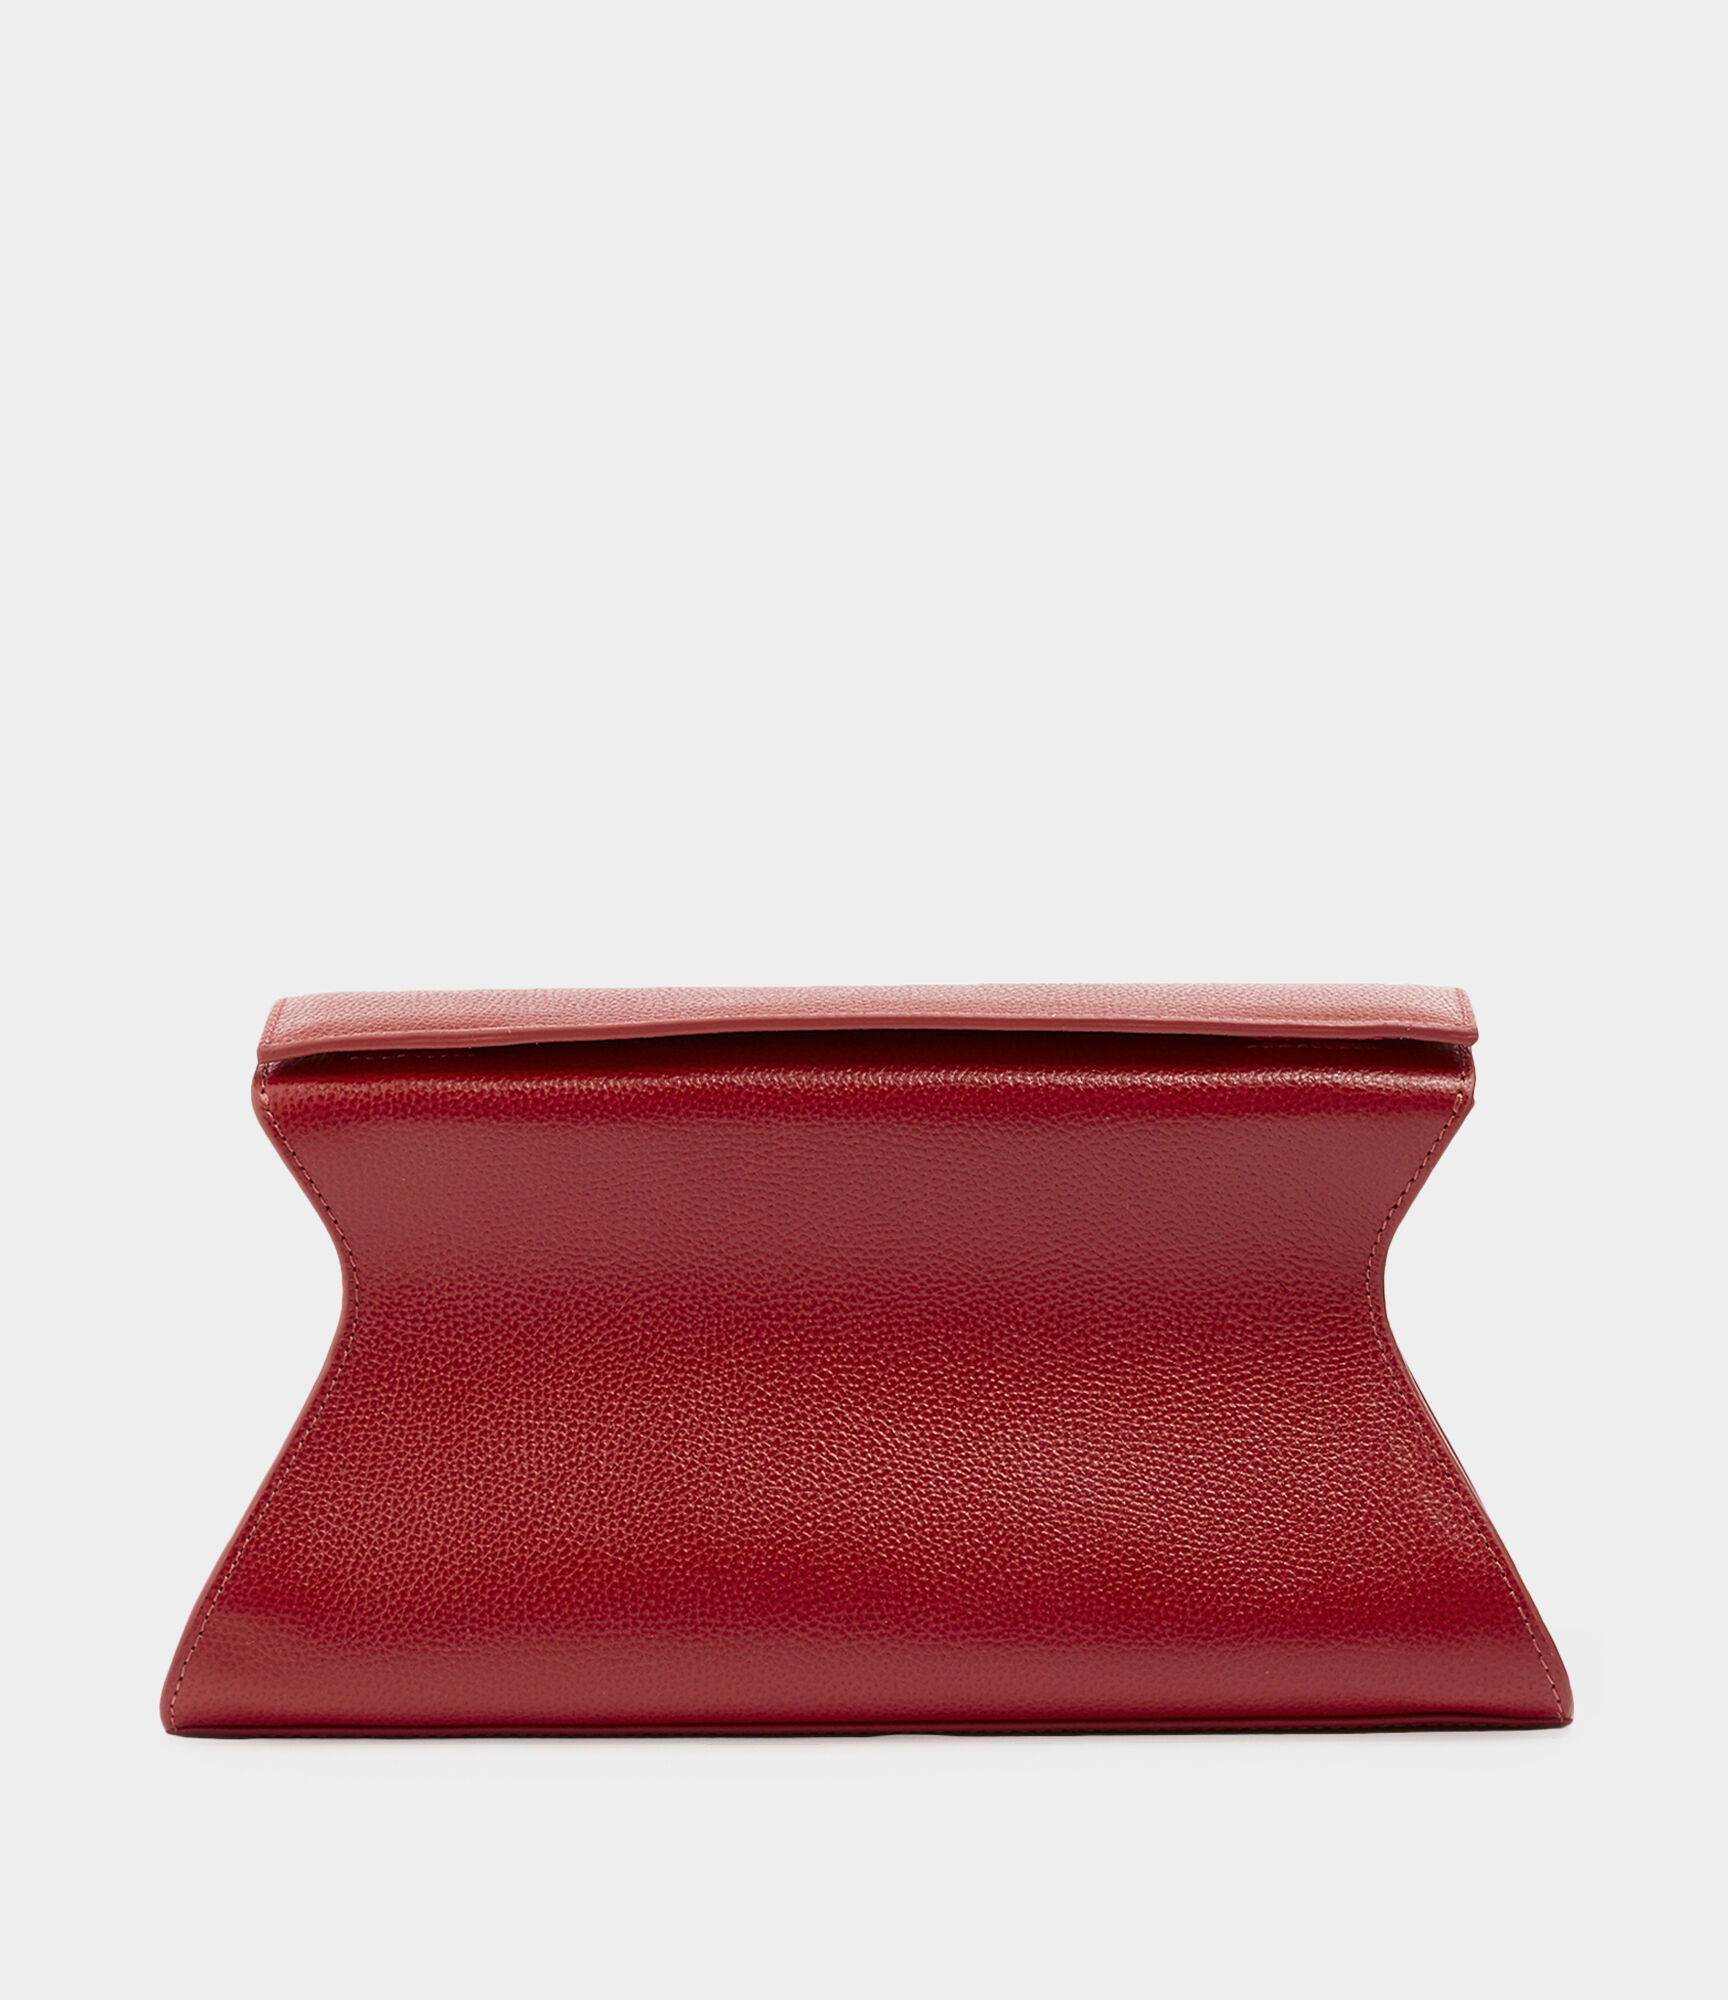 VIVIENNE WESTWOOD Kelly Clutch Bag Red